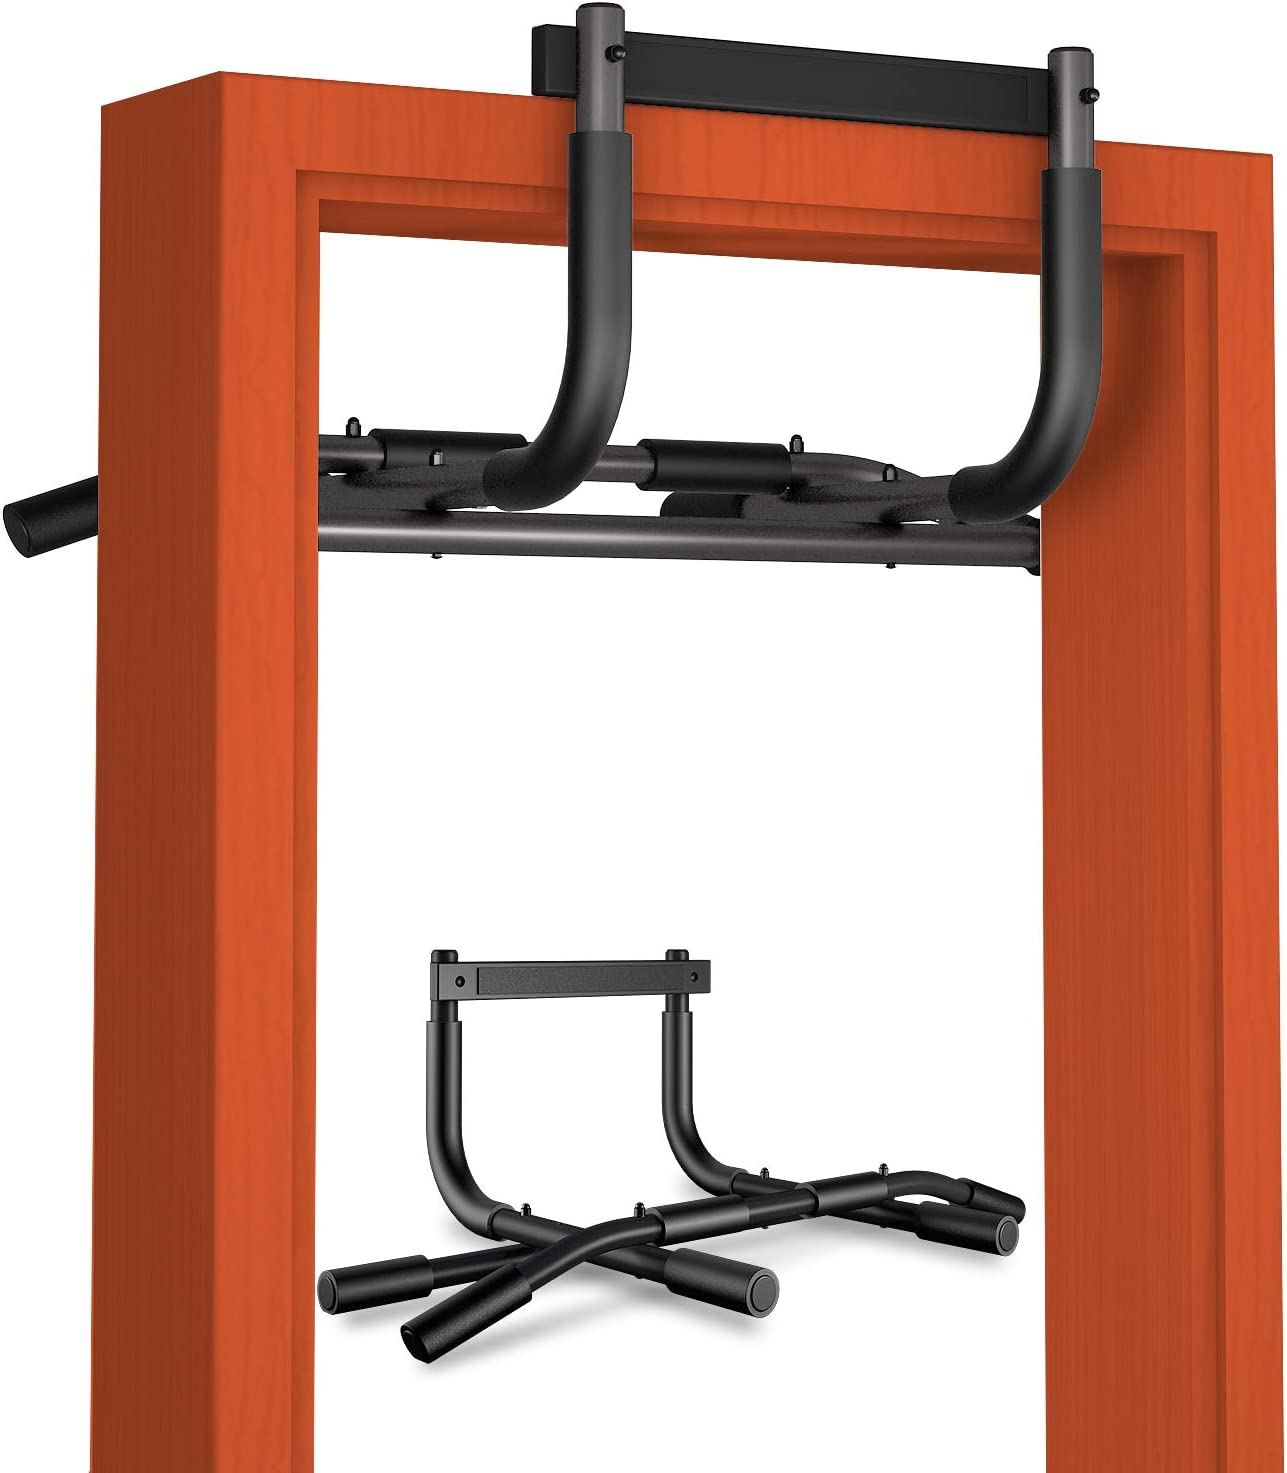 AOAOGYM Multi Grip Pull Up Bar for Doorway,Chin Up Bar Heavy Duty Doorway Trainer for Home Gym Exercise Equipment,Pullup Bar Fits Most Door Ways